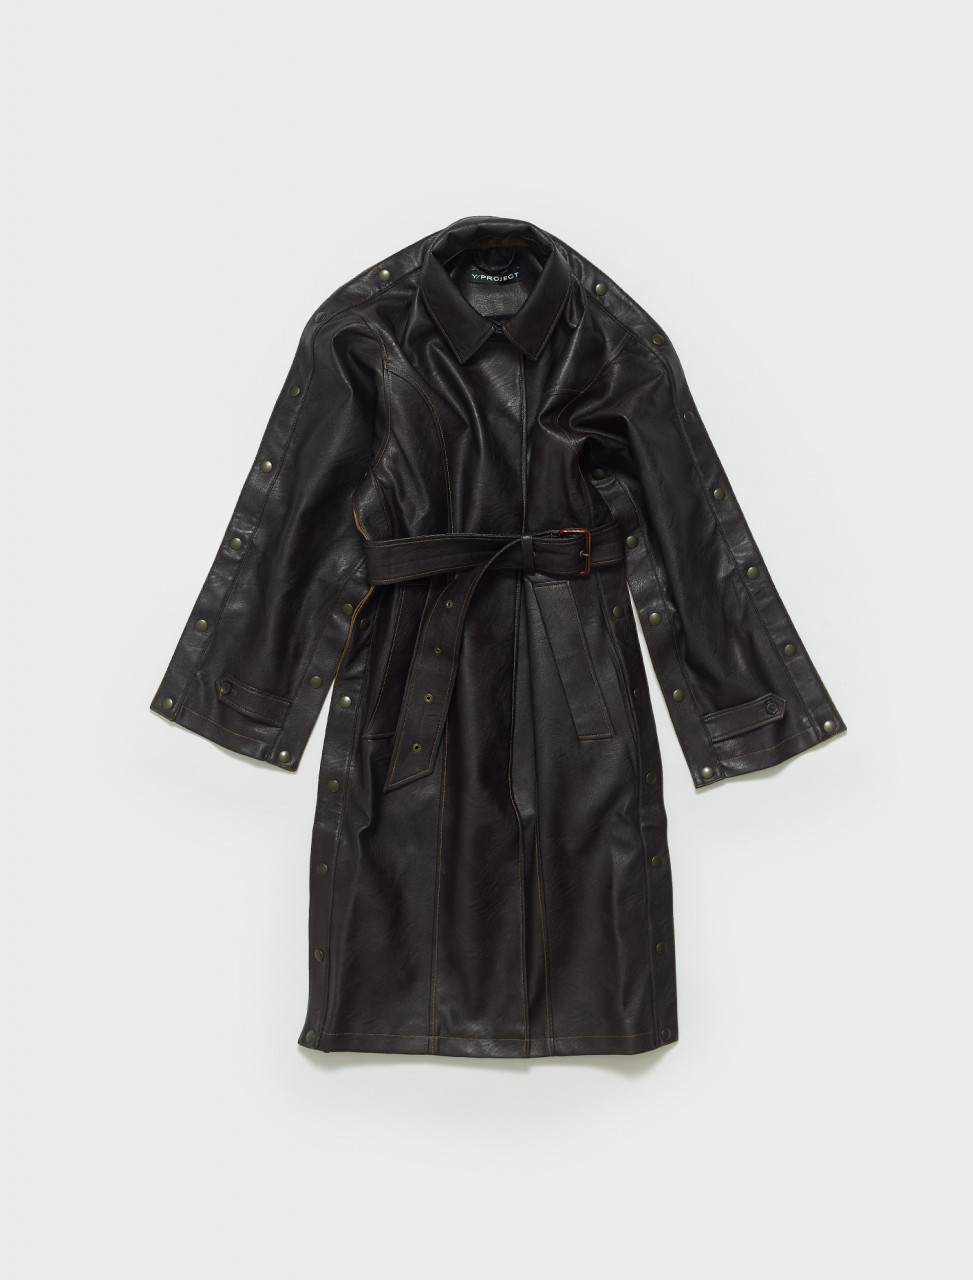 WCOAT29-S20 Y PROJECT SNAP TRENCH COAT IN DARK BROWN